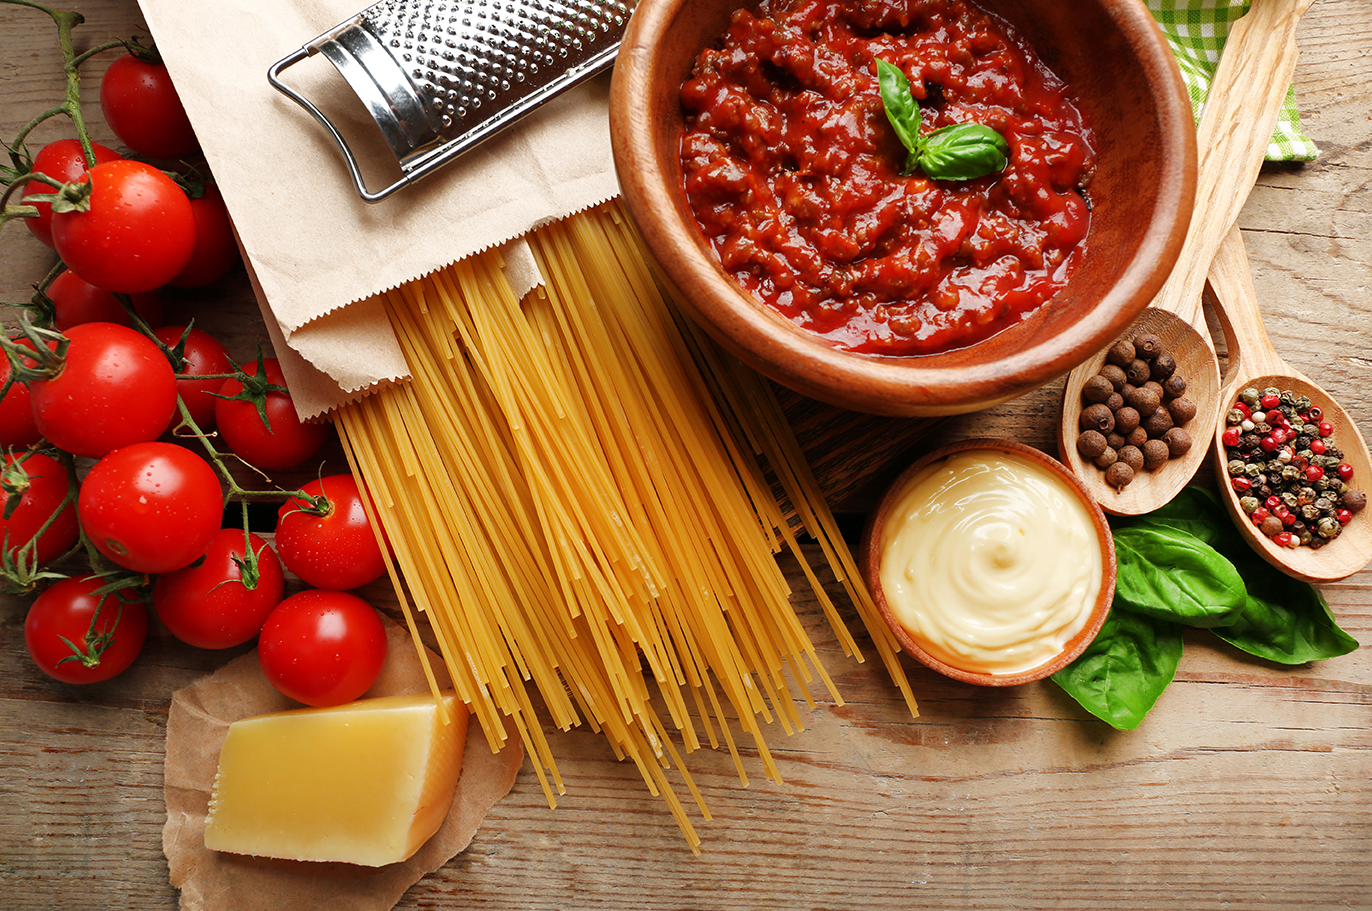 ingrediants to spaghetti: dry spaghetti, tomato sauce, tomatoes, cheese, and herbs and spices